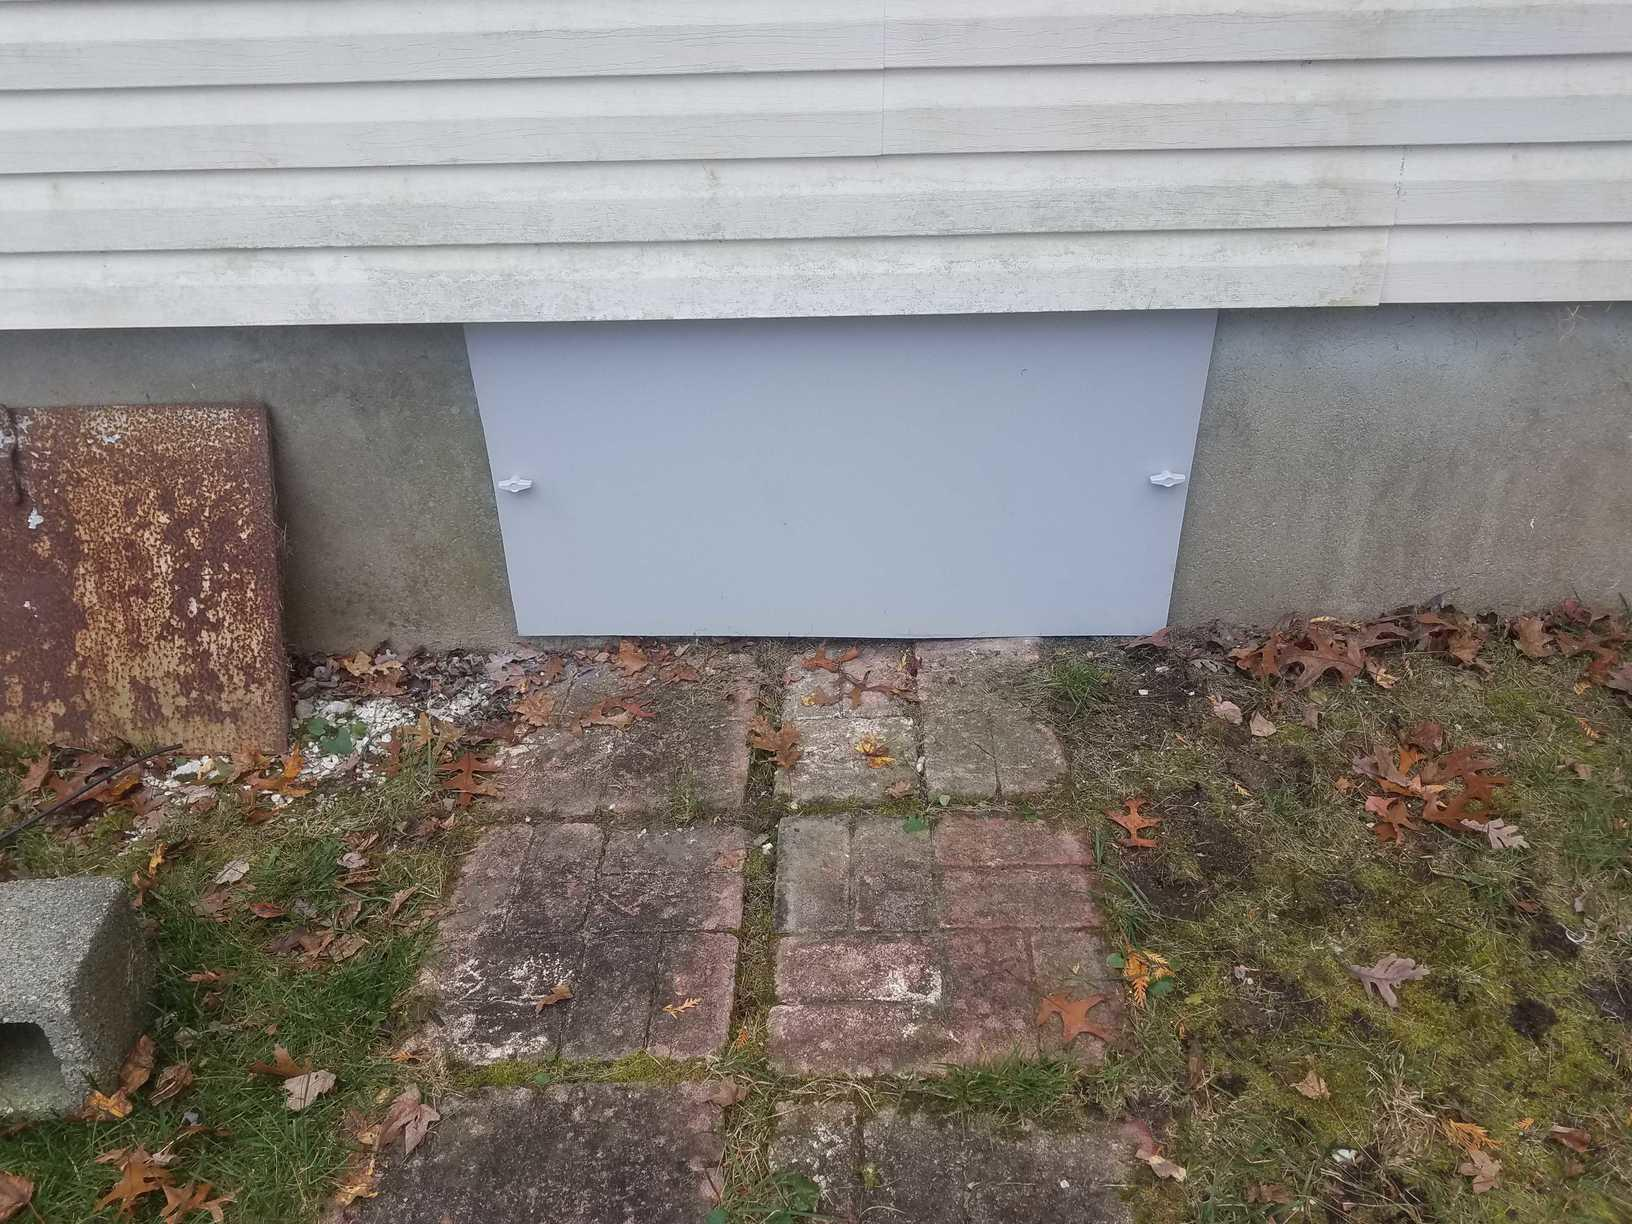 Old crawl space door replaced in Deal, NJ - After Photo